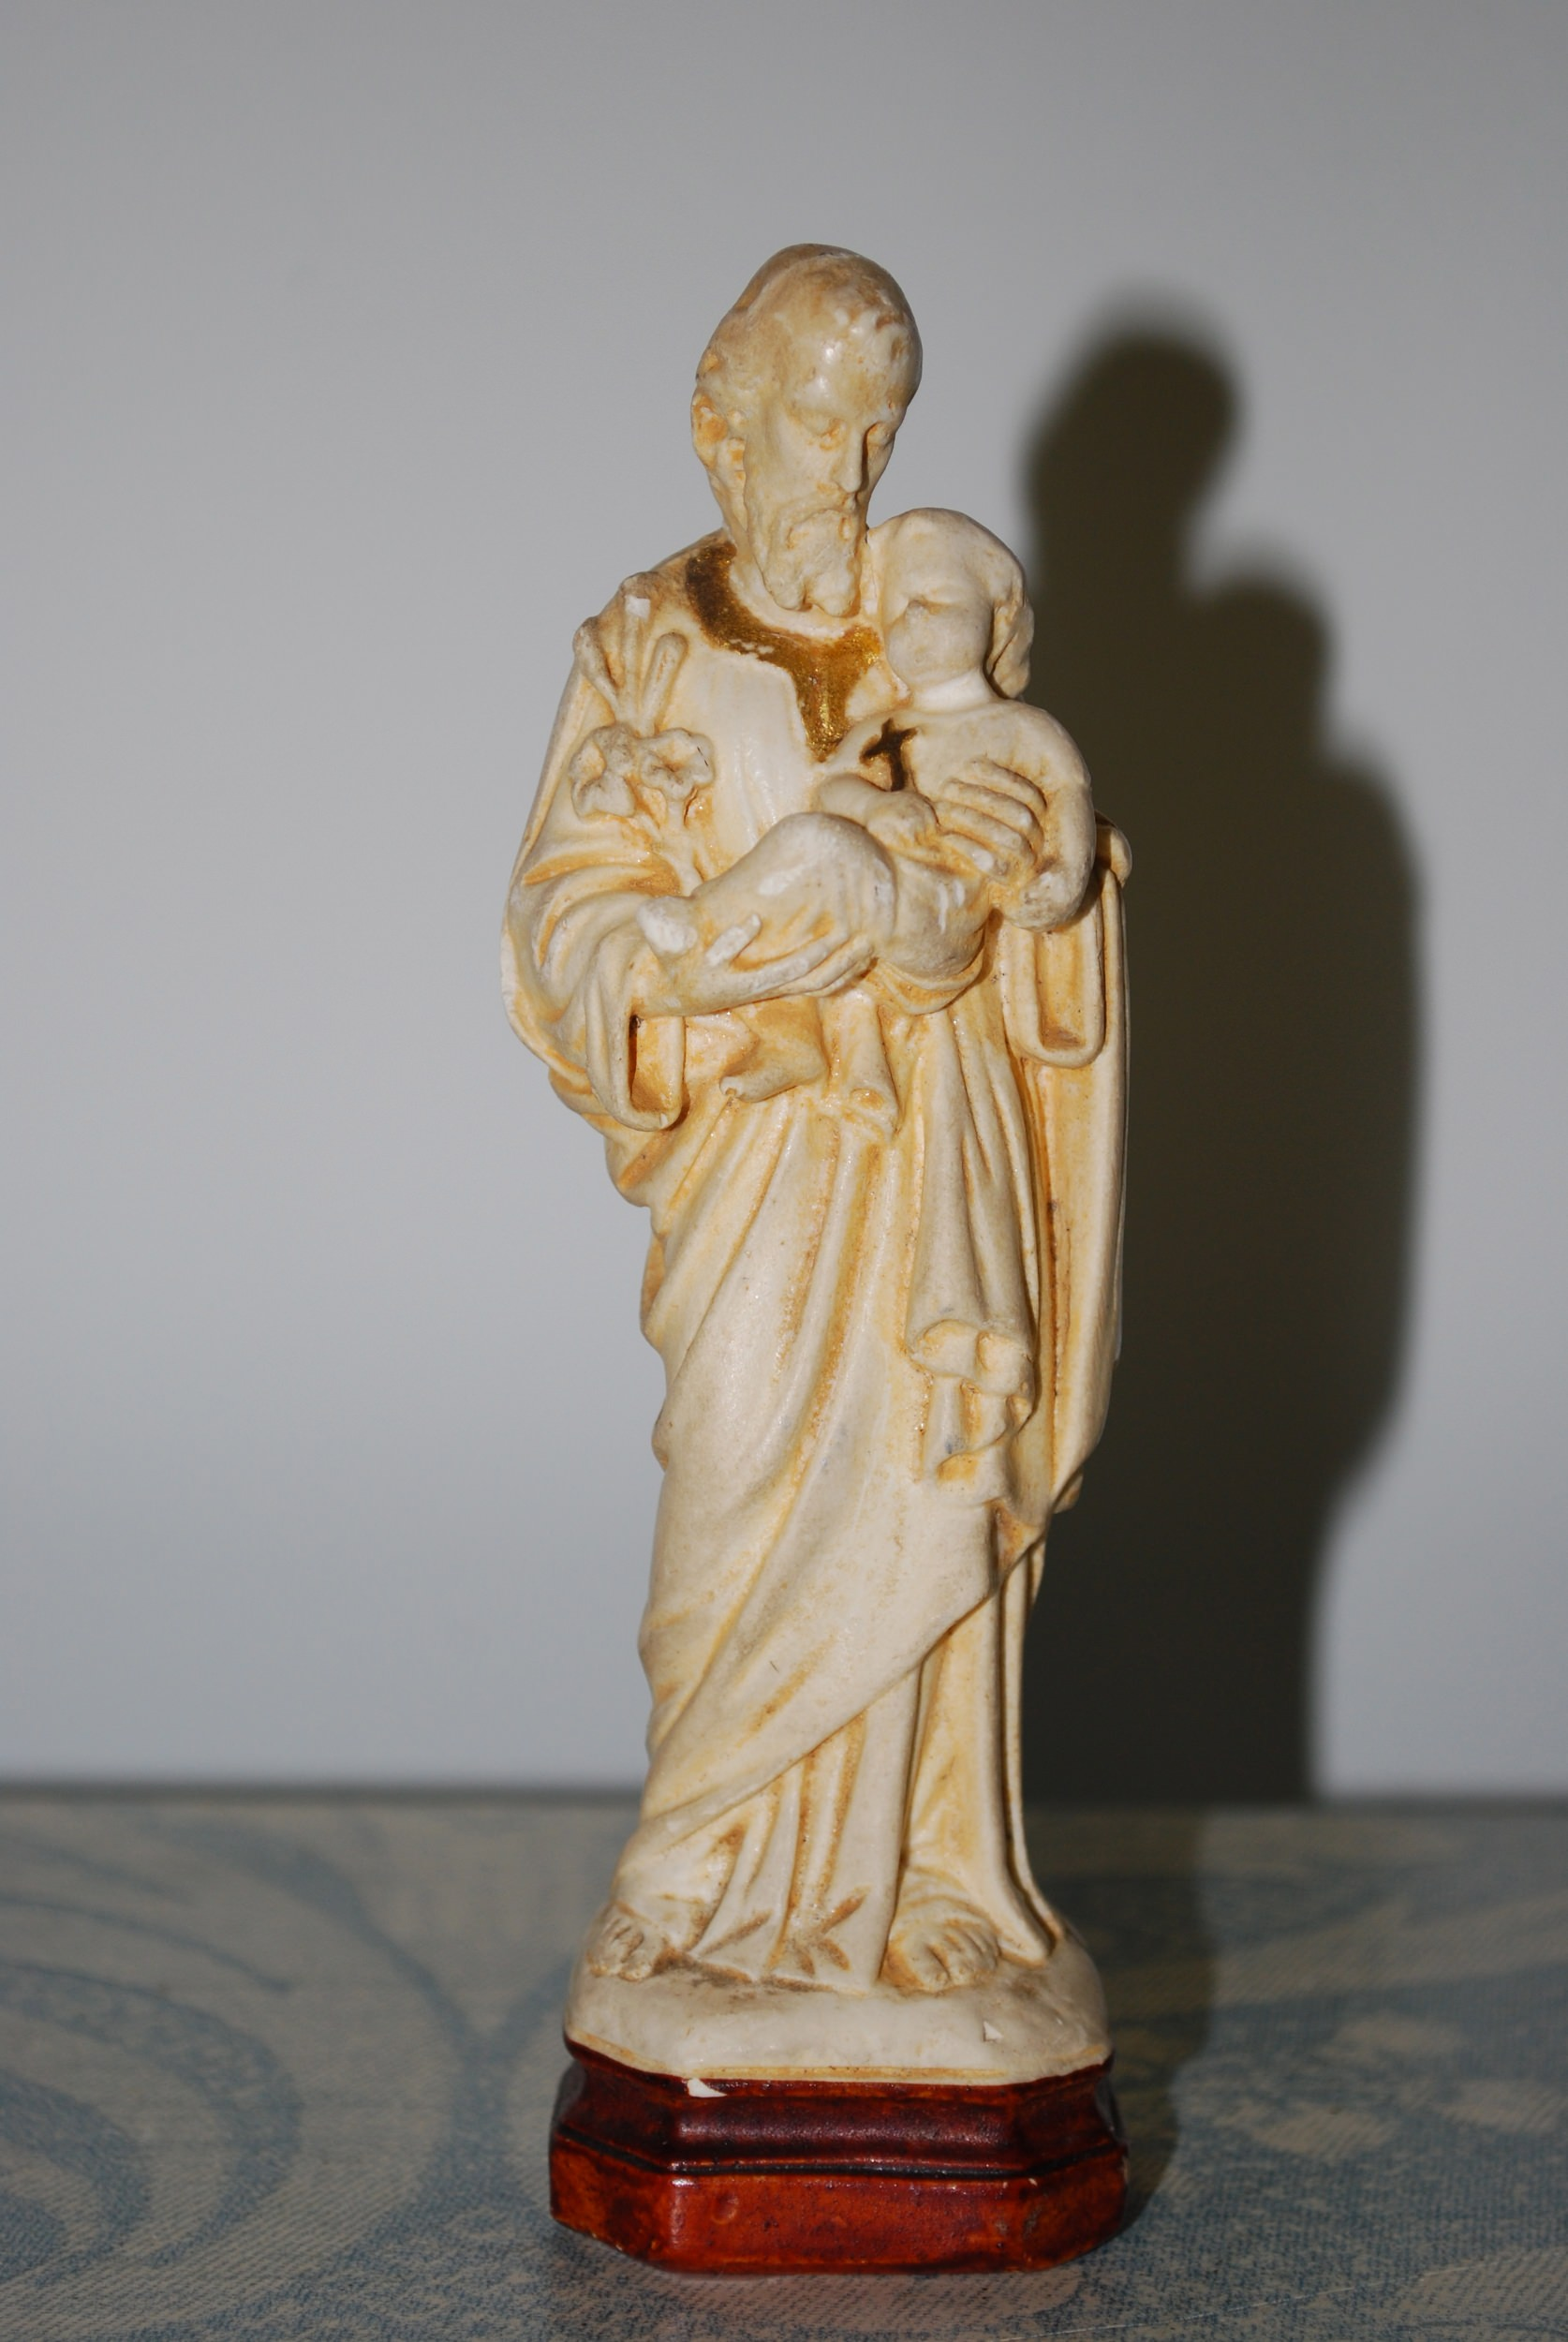 Fig. 3 St. Joseph with small Child Jesus, early 20th century